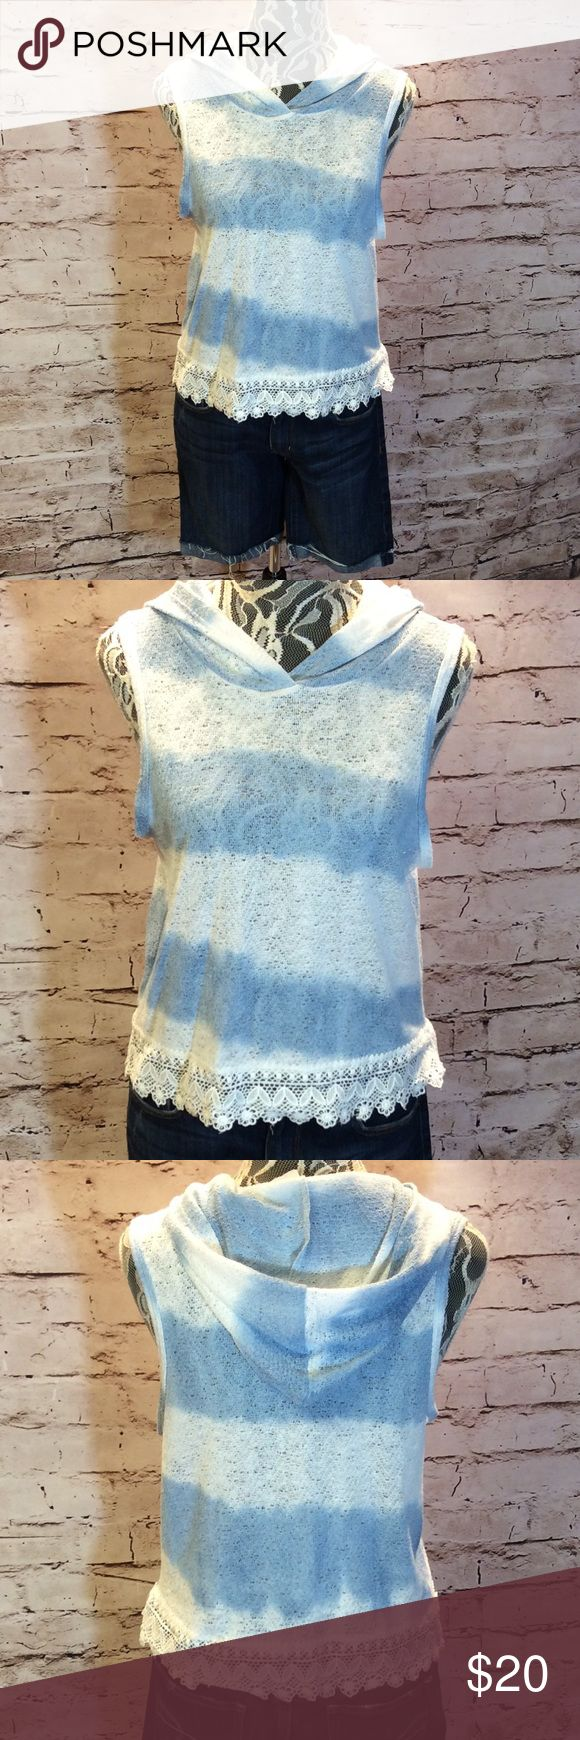 CUTE SLEEVELESS HOODED TOP WITH LACE DETAIL Pretty blue and white top with a white lace/crochet hem and a hood. Intro Tops Blouses